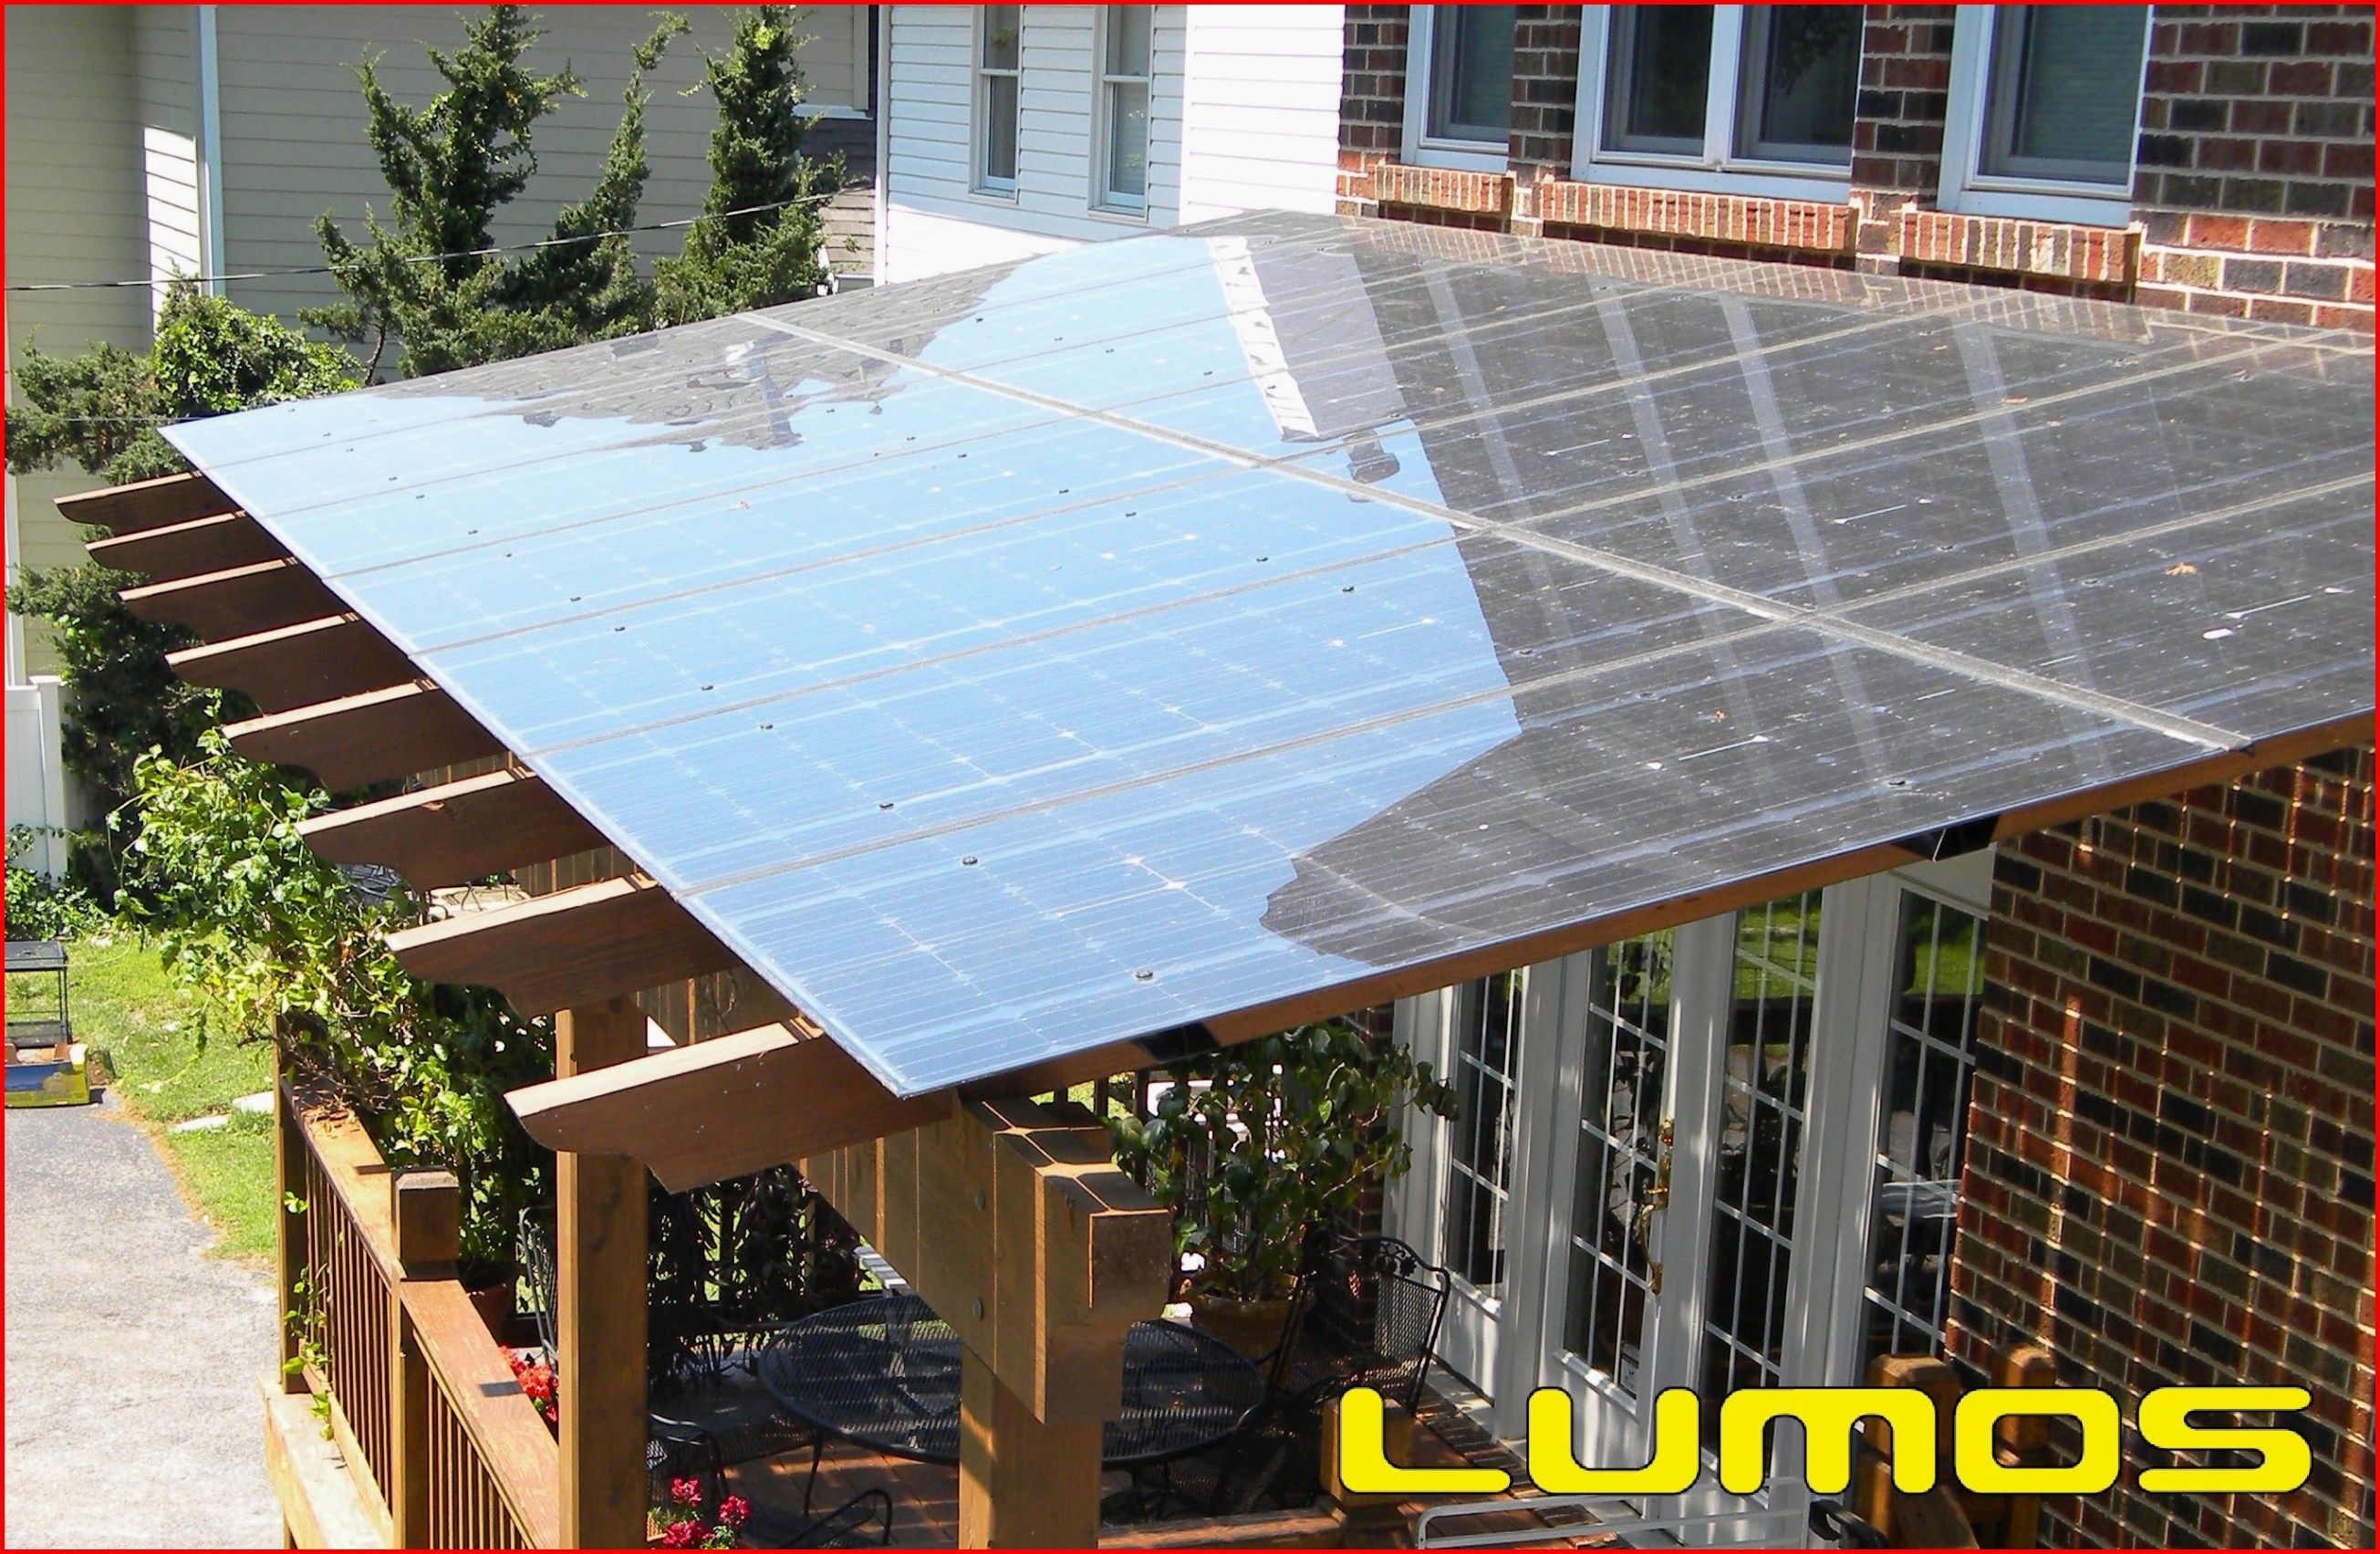 Green Energy USA Solar patio, Solar pergola